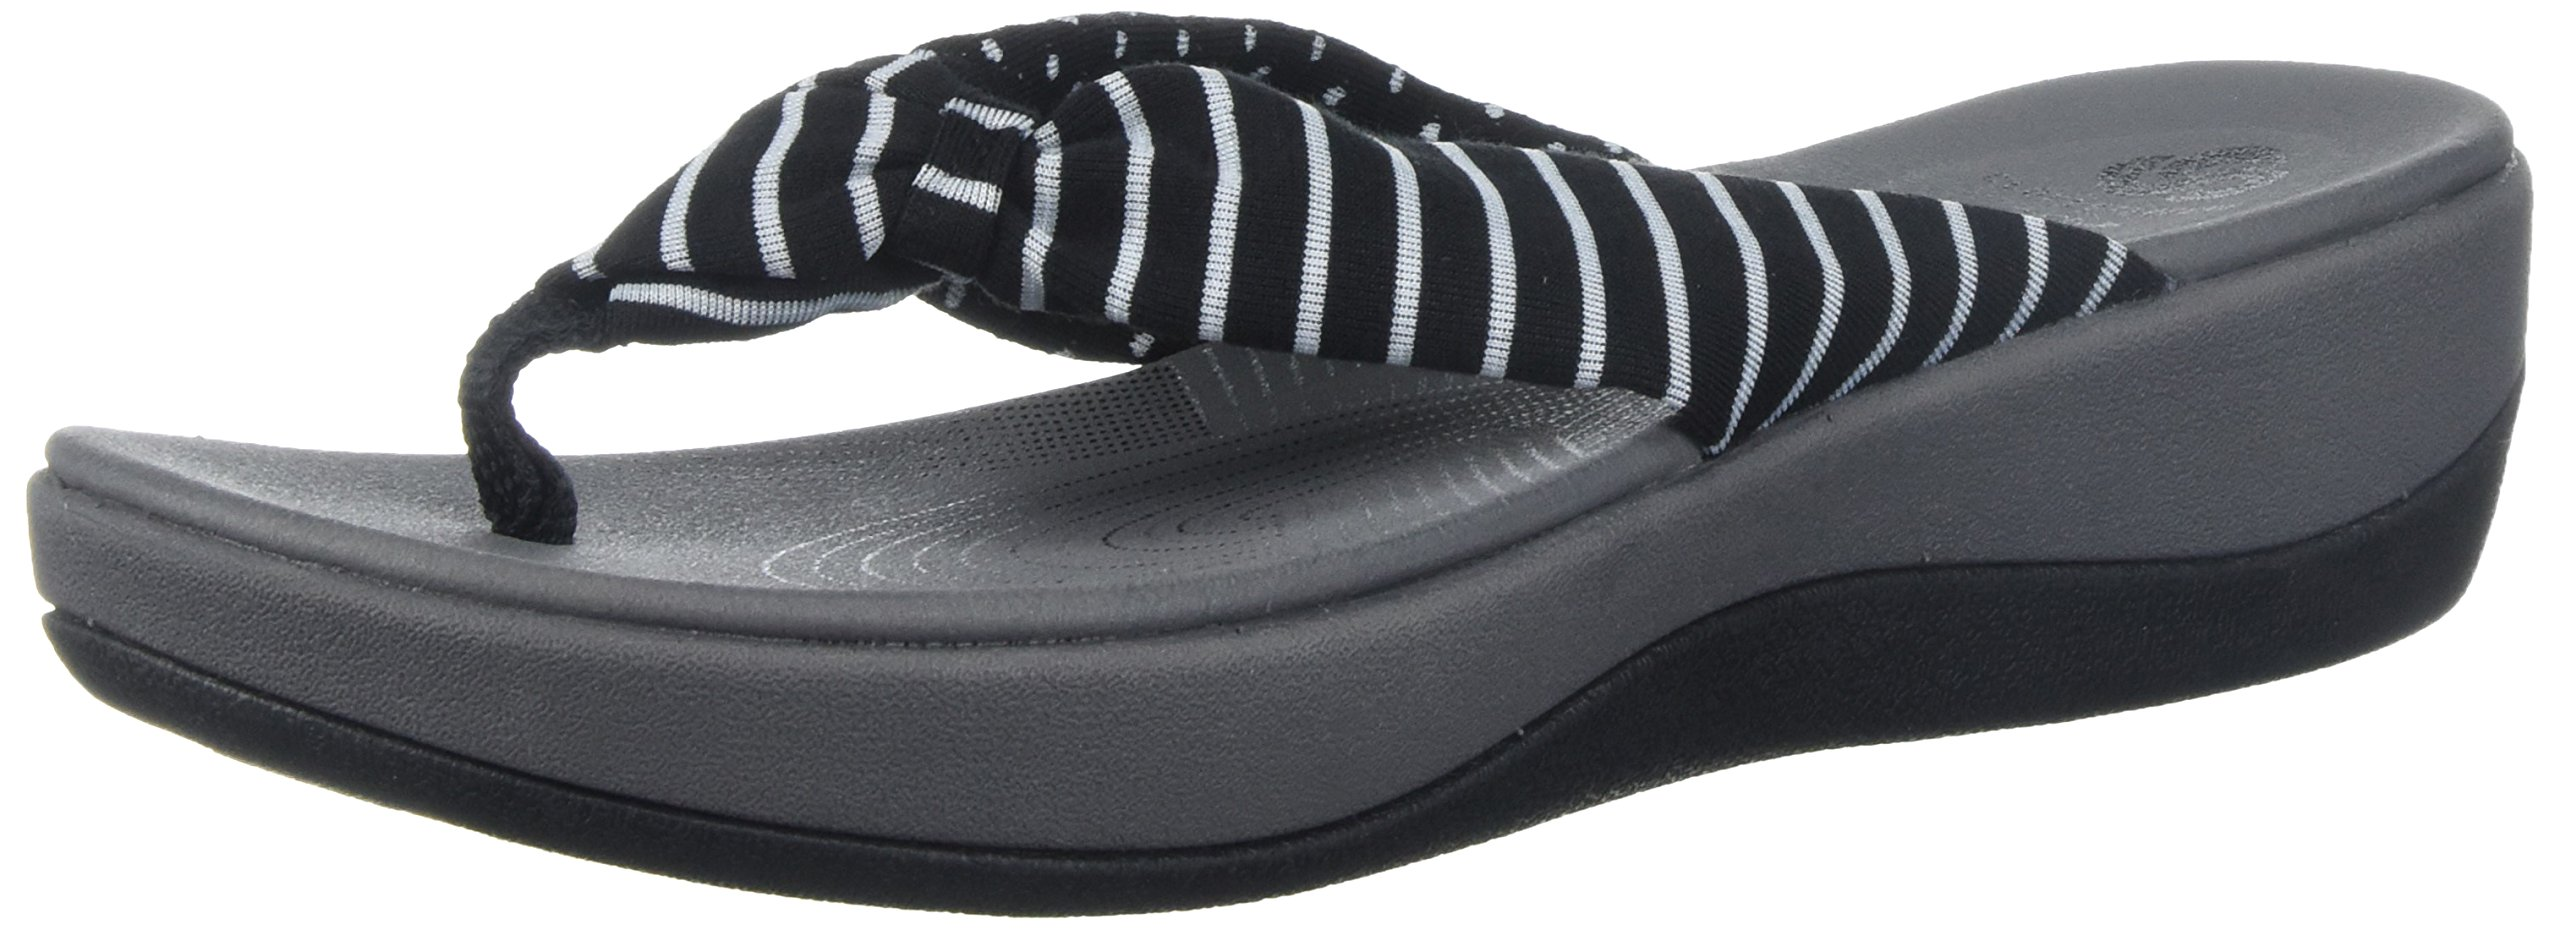 05c535a3389 Best Rated in Women s Sandals   Helpful Customer Reviews - Amazon.com